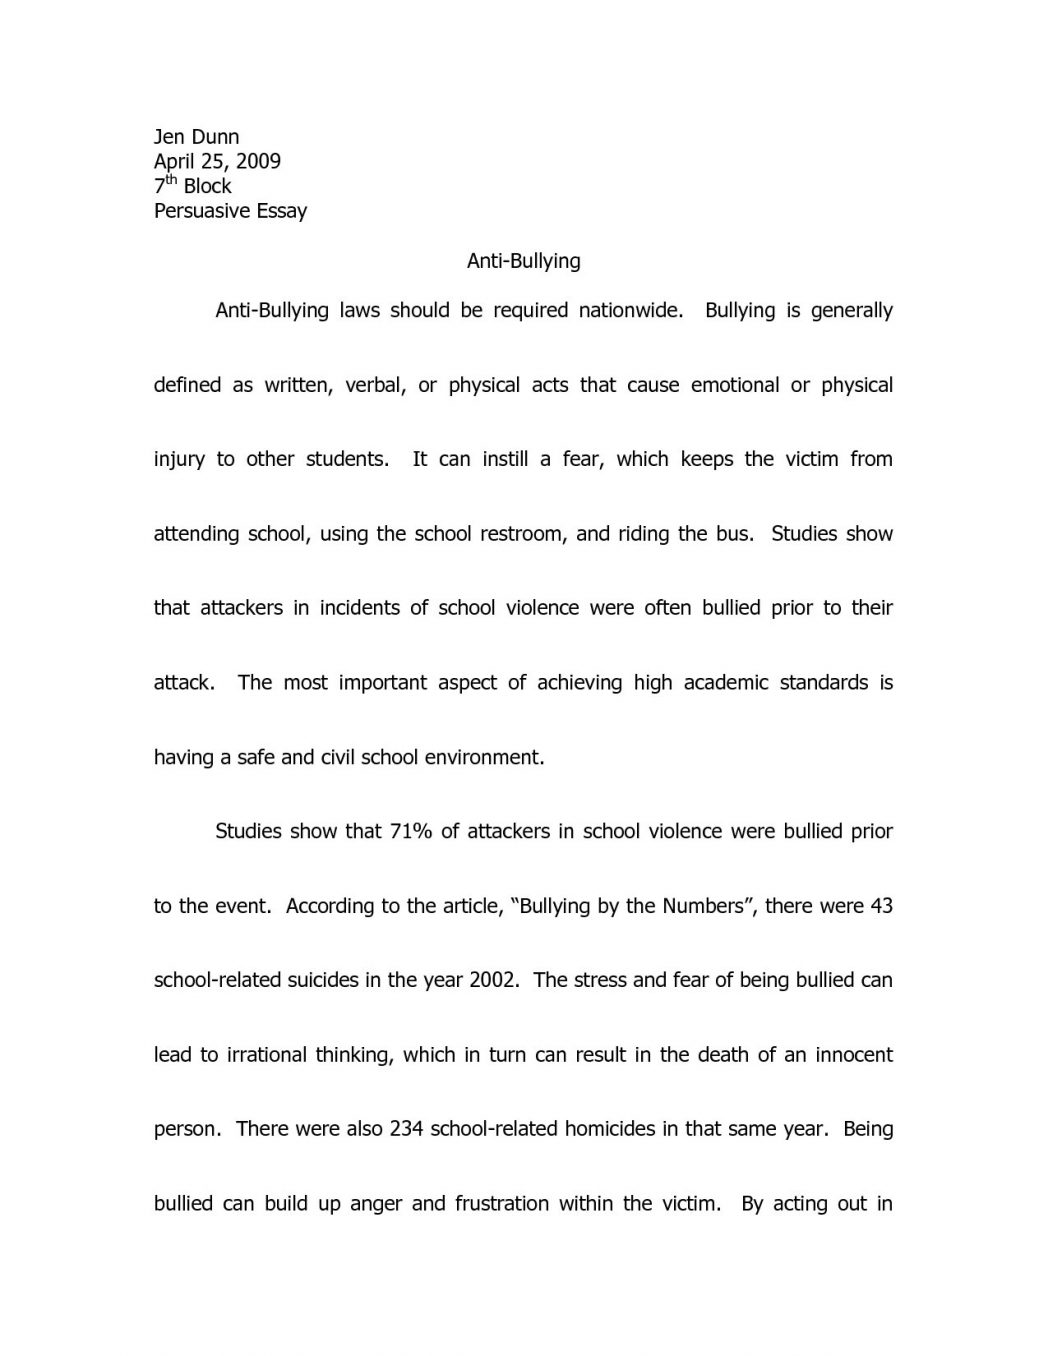 005 Essay Example Cyberbullying On Speech Good Books To Write Essays Persuasive Topics About Tudors Ks2 Websi Cyber Bullying Argumentative Beautiful Conclusion Paragraph Full